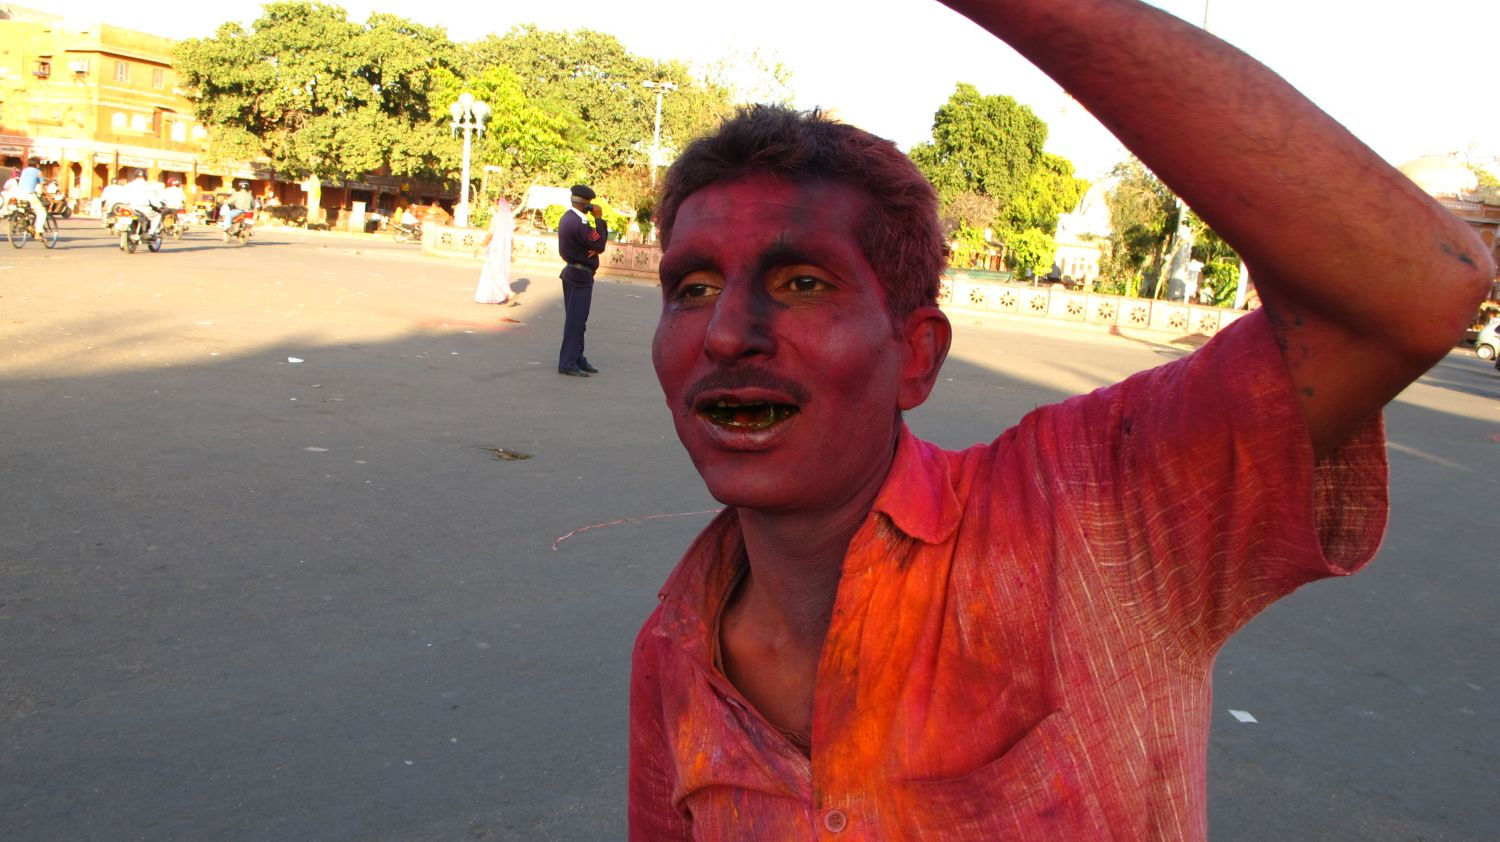 Jaipur | The Holi 23 | Feast of colors | Indian man celebrating the Holi | ©sandrine cohen